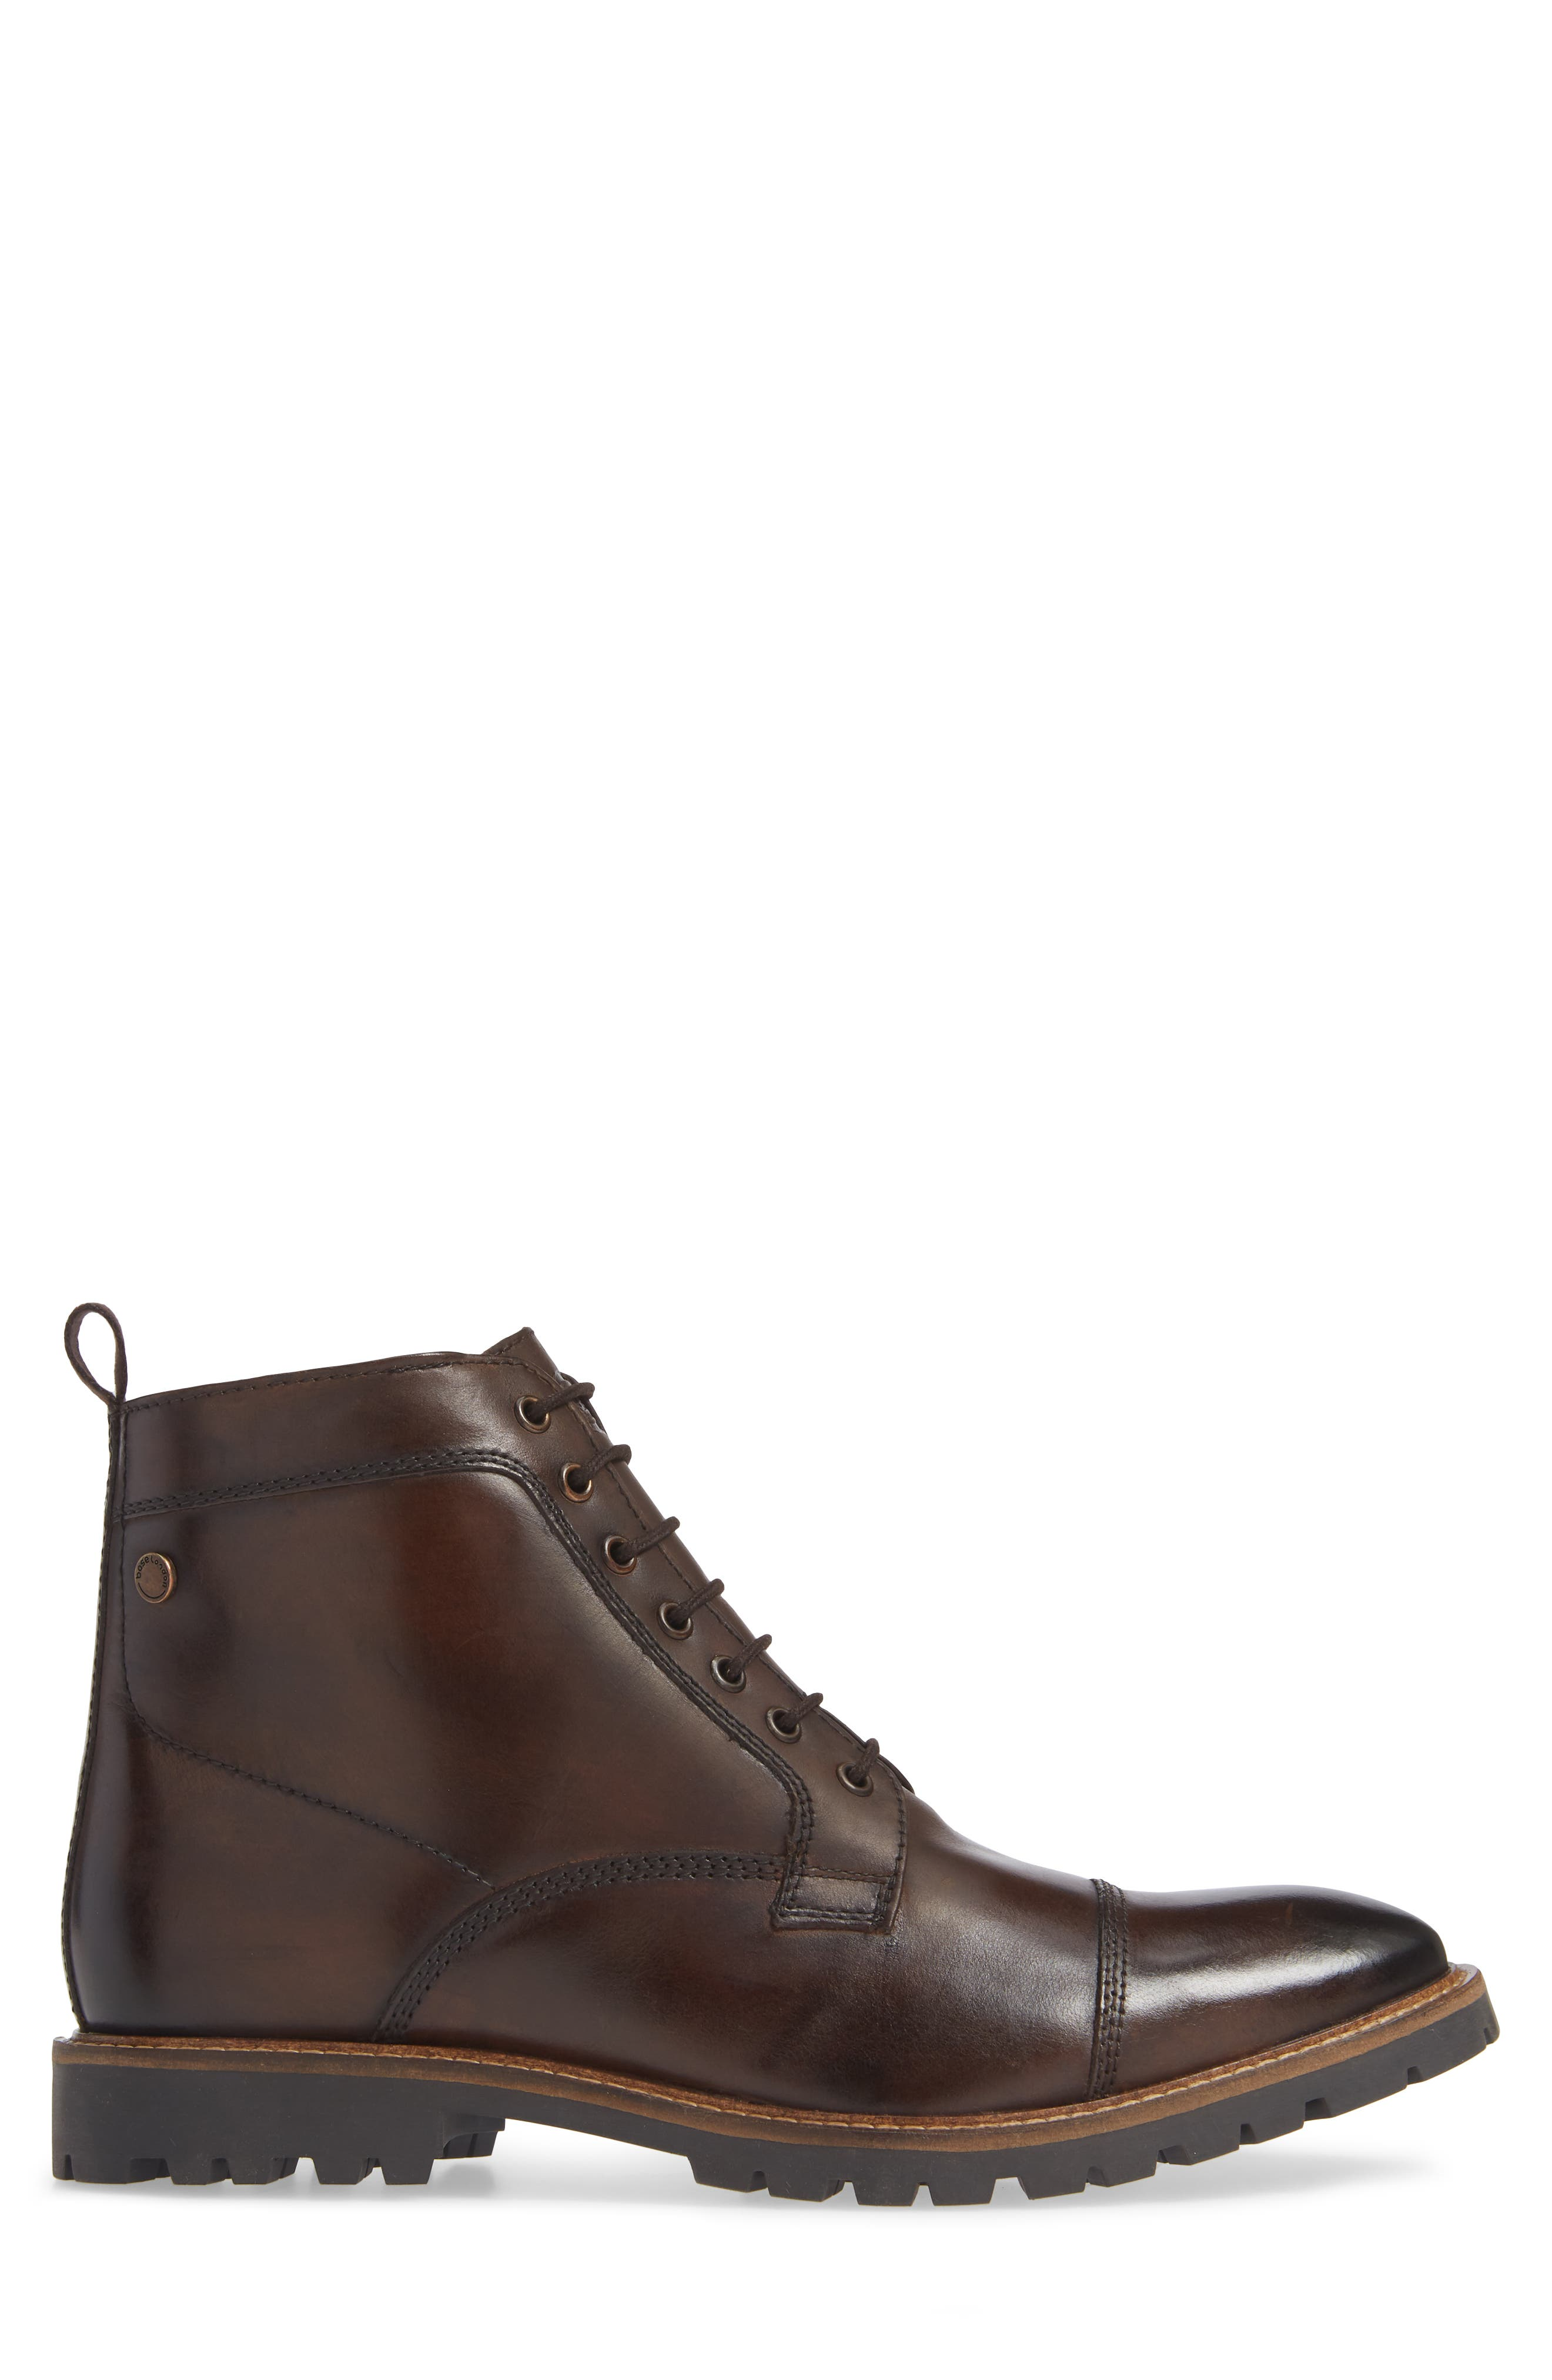 Lugged Cap Toe Boot,                             Alternate thumbnail 3, color,                             BROWN